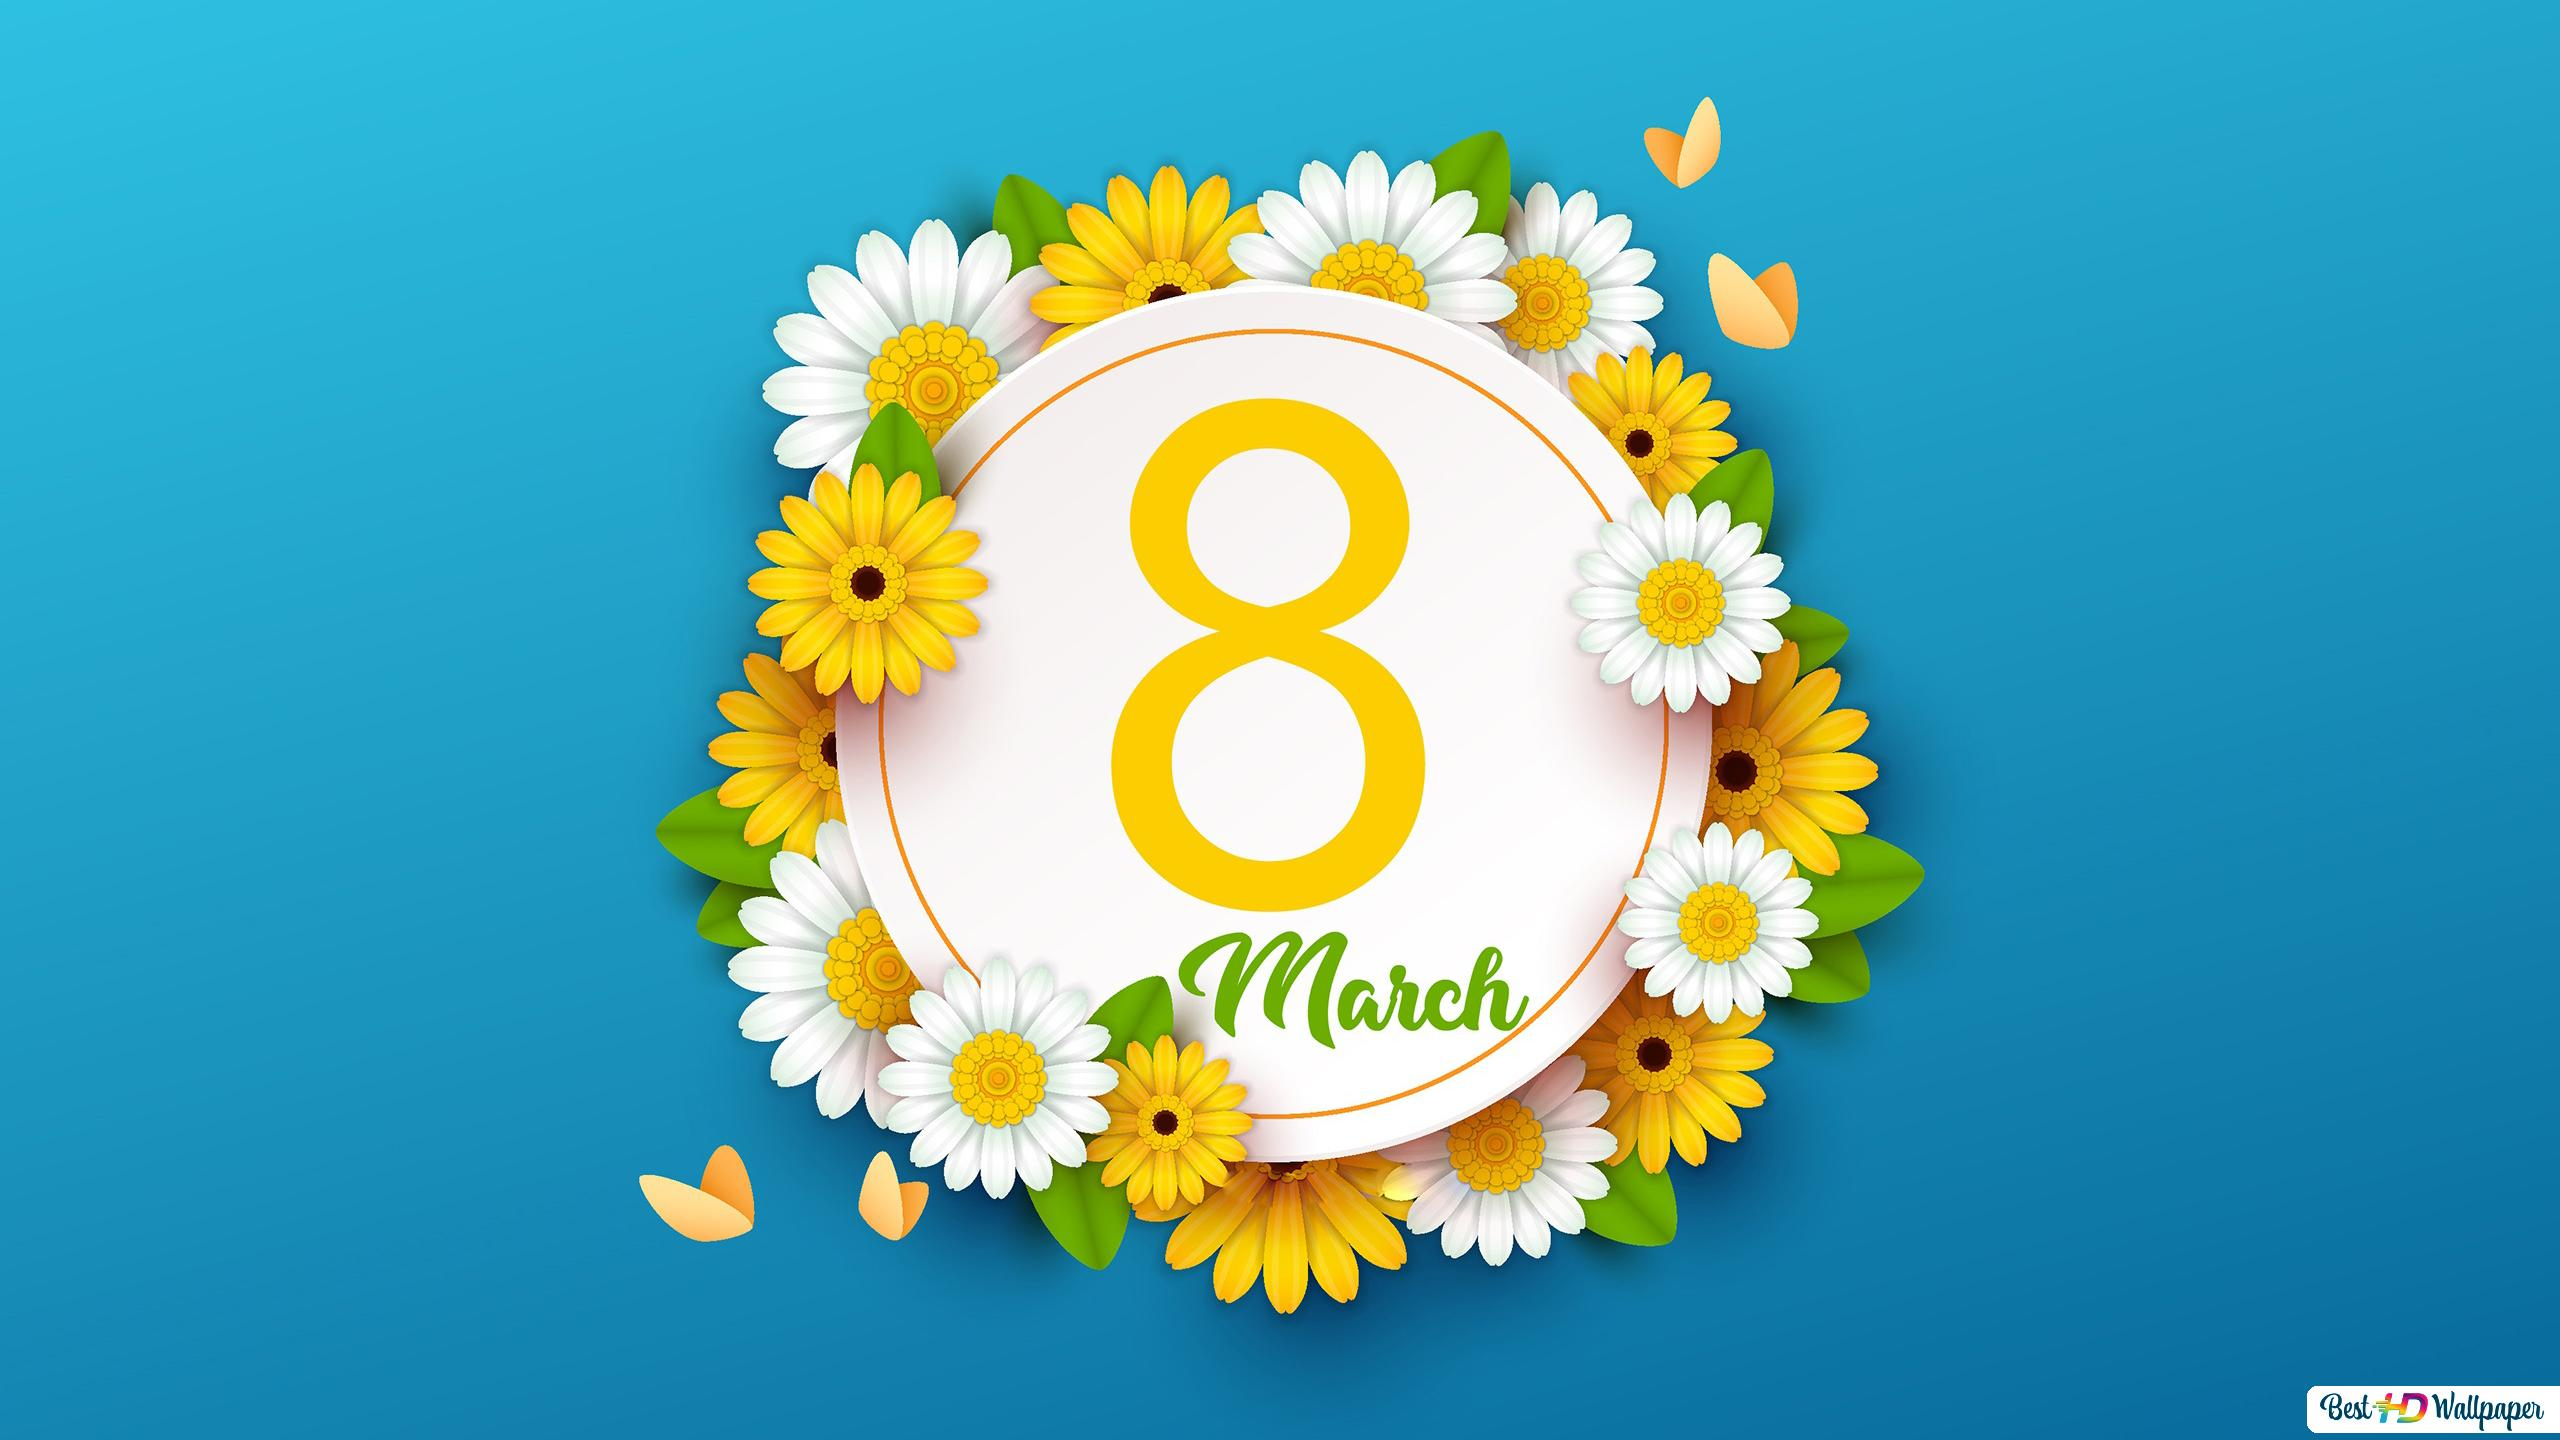 8th Of March Is Women S Day With White And Yellow Daisy Flowers